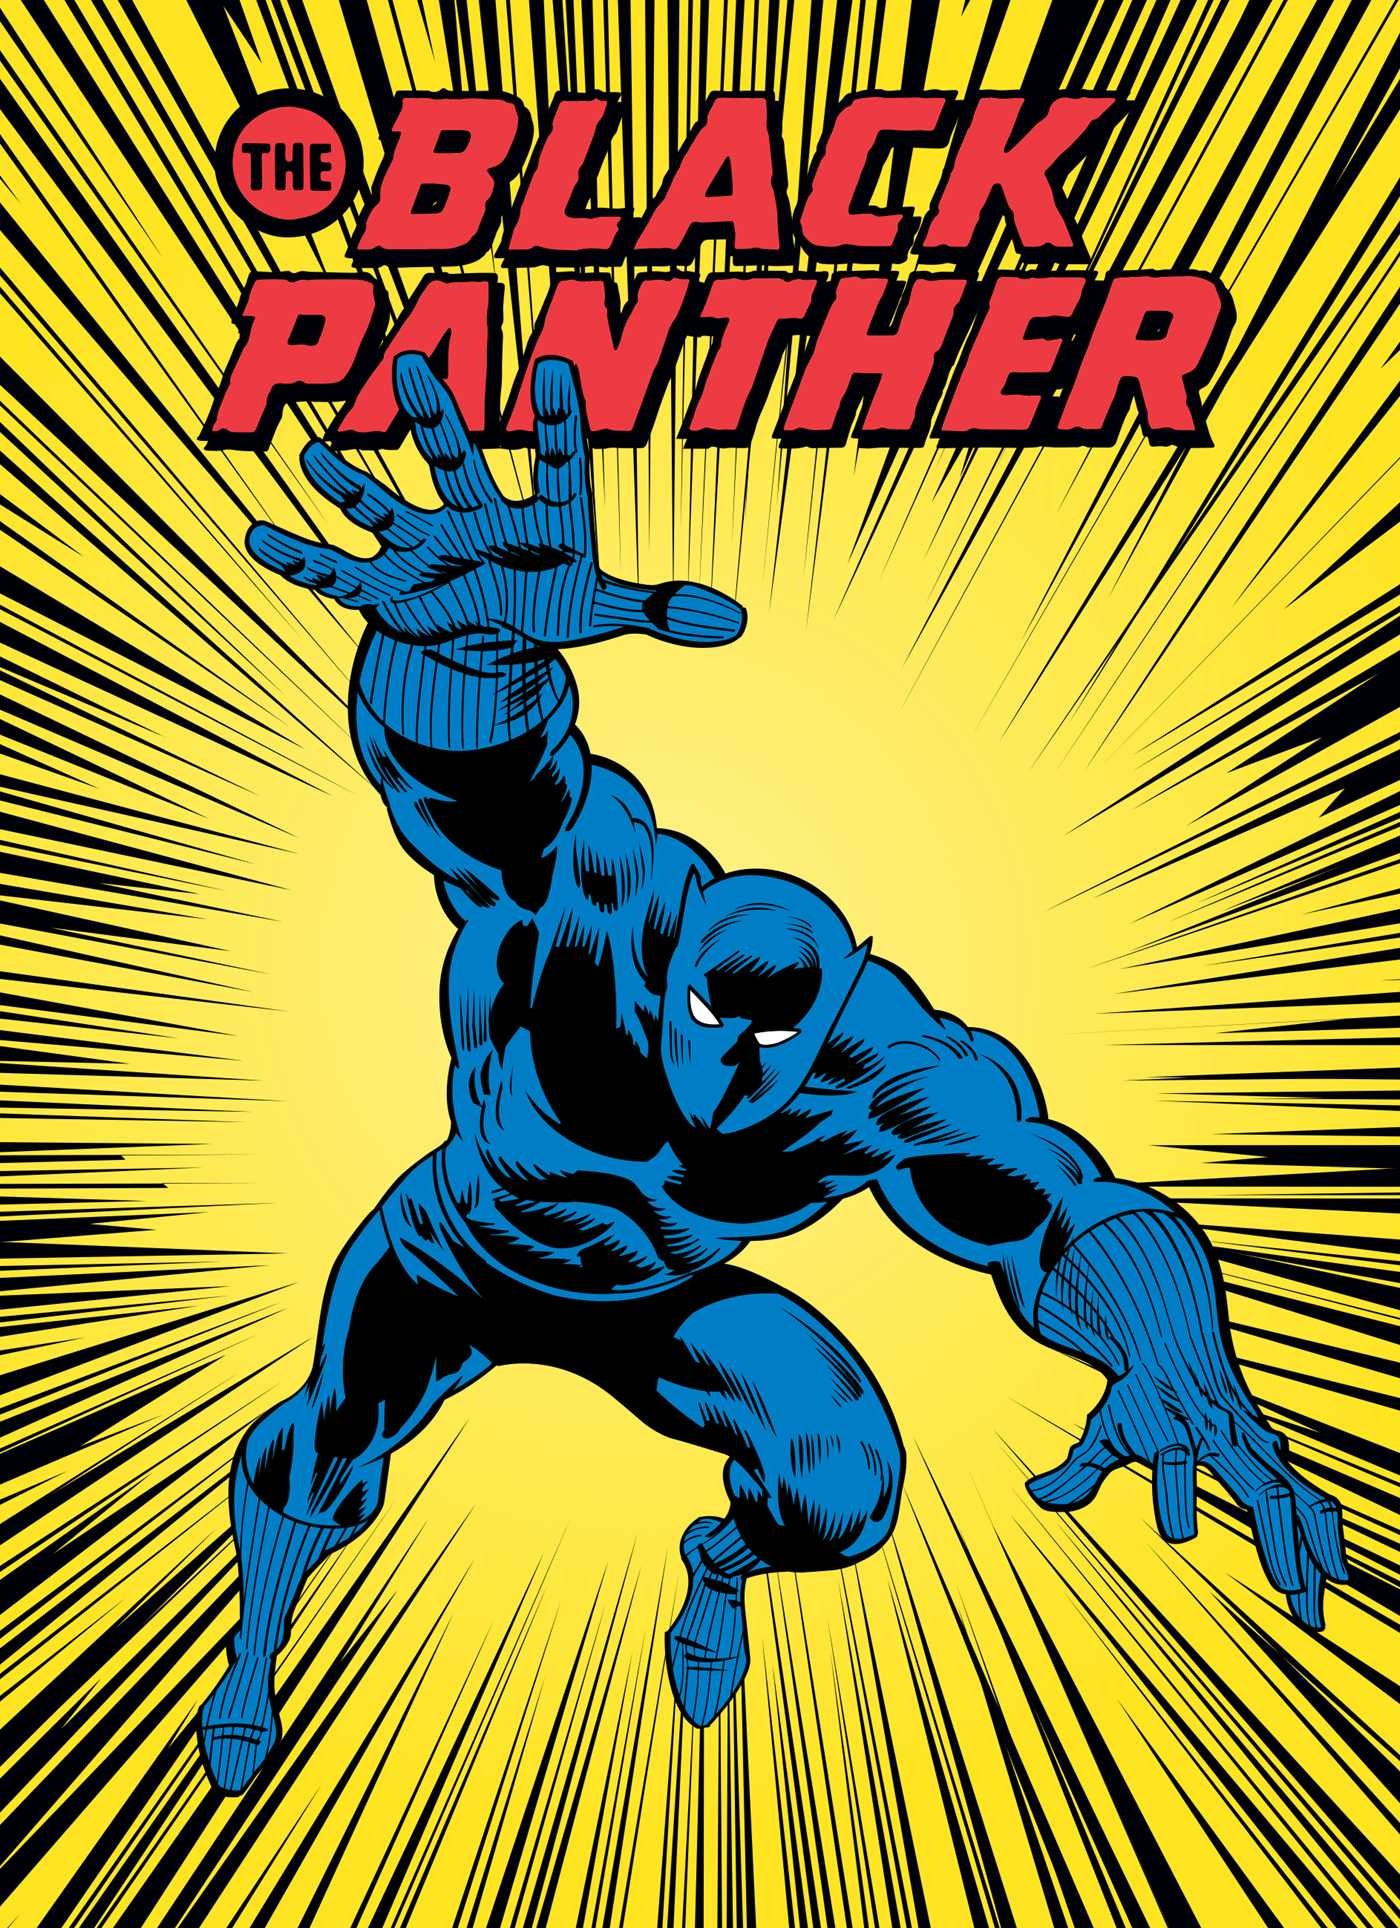 Marvel comics black panther deluxe note card set with keepsake book box 9781683833390.in01